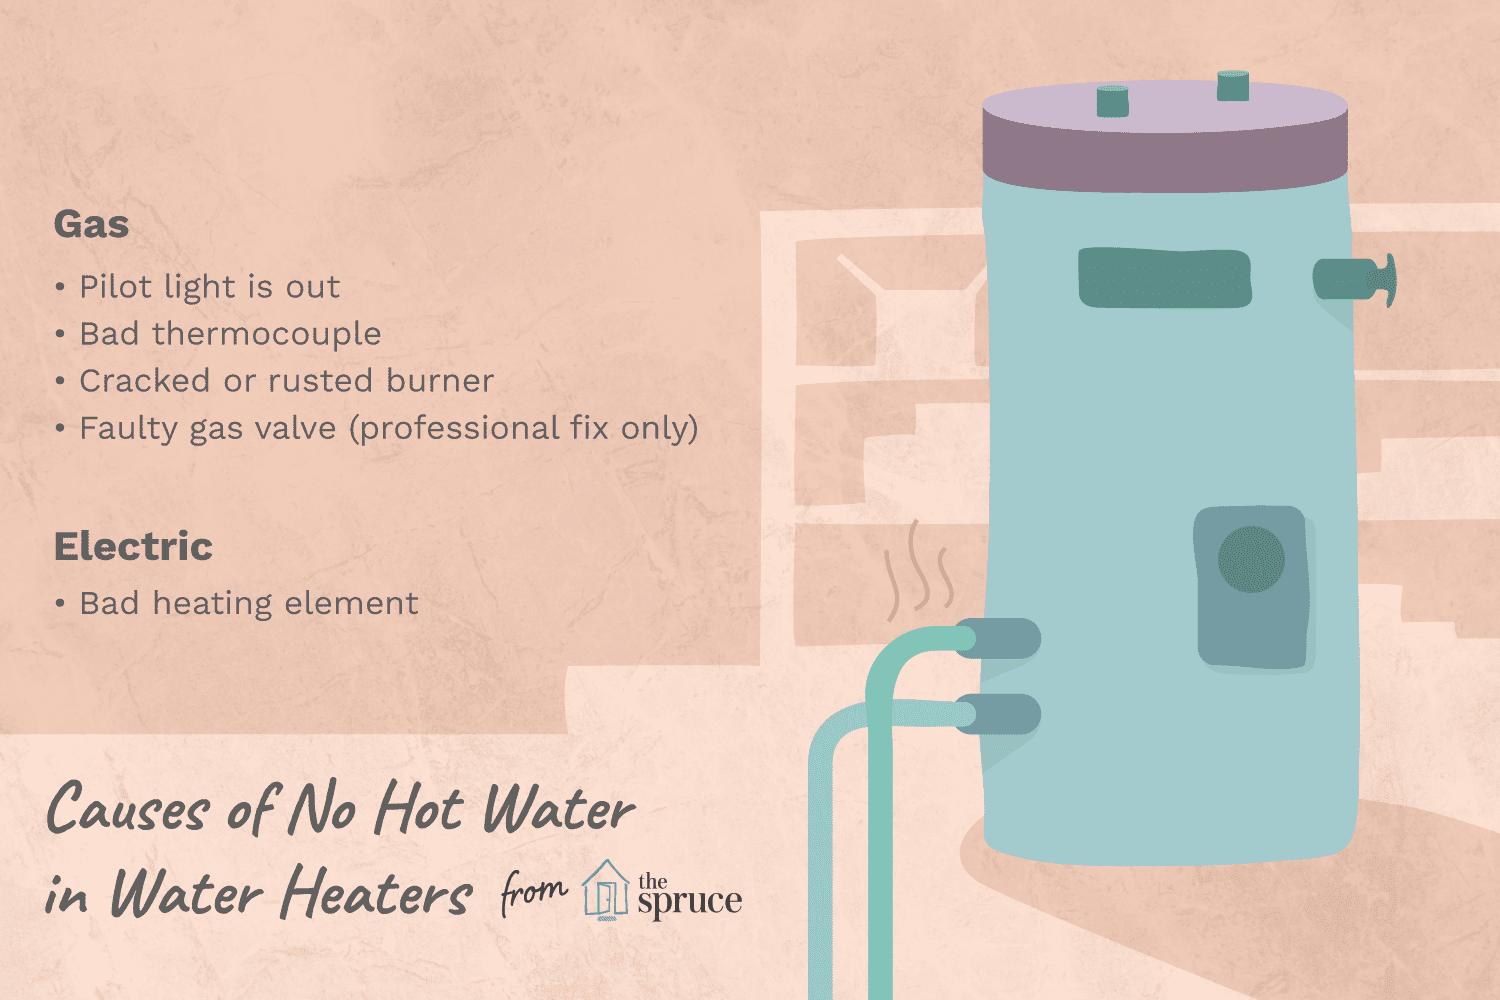 No Hot Water >> How To Troubleshoot A Gas Water Heater With No Hot Water